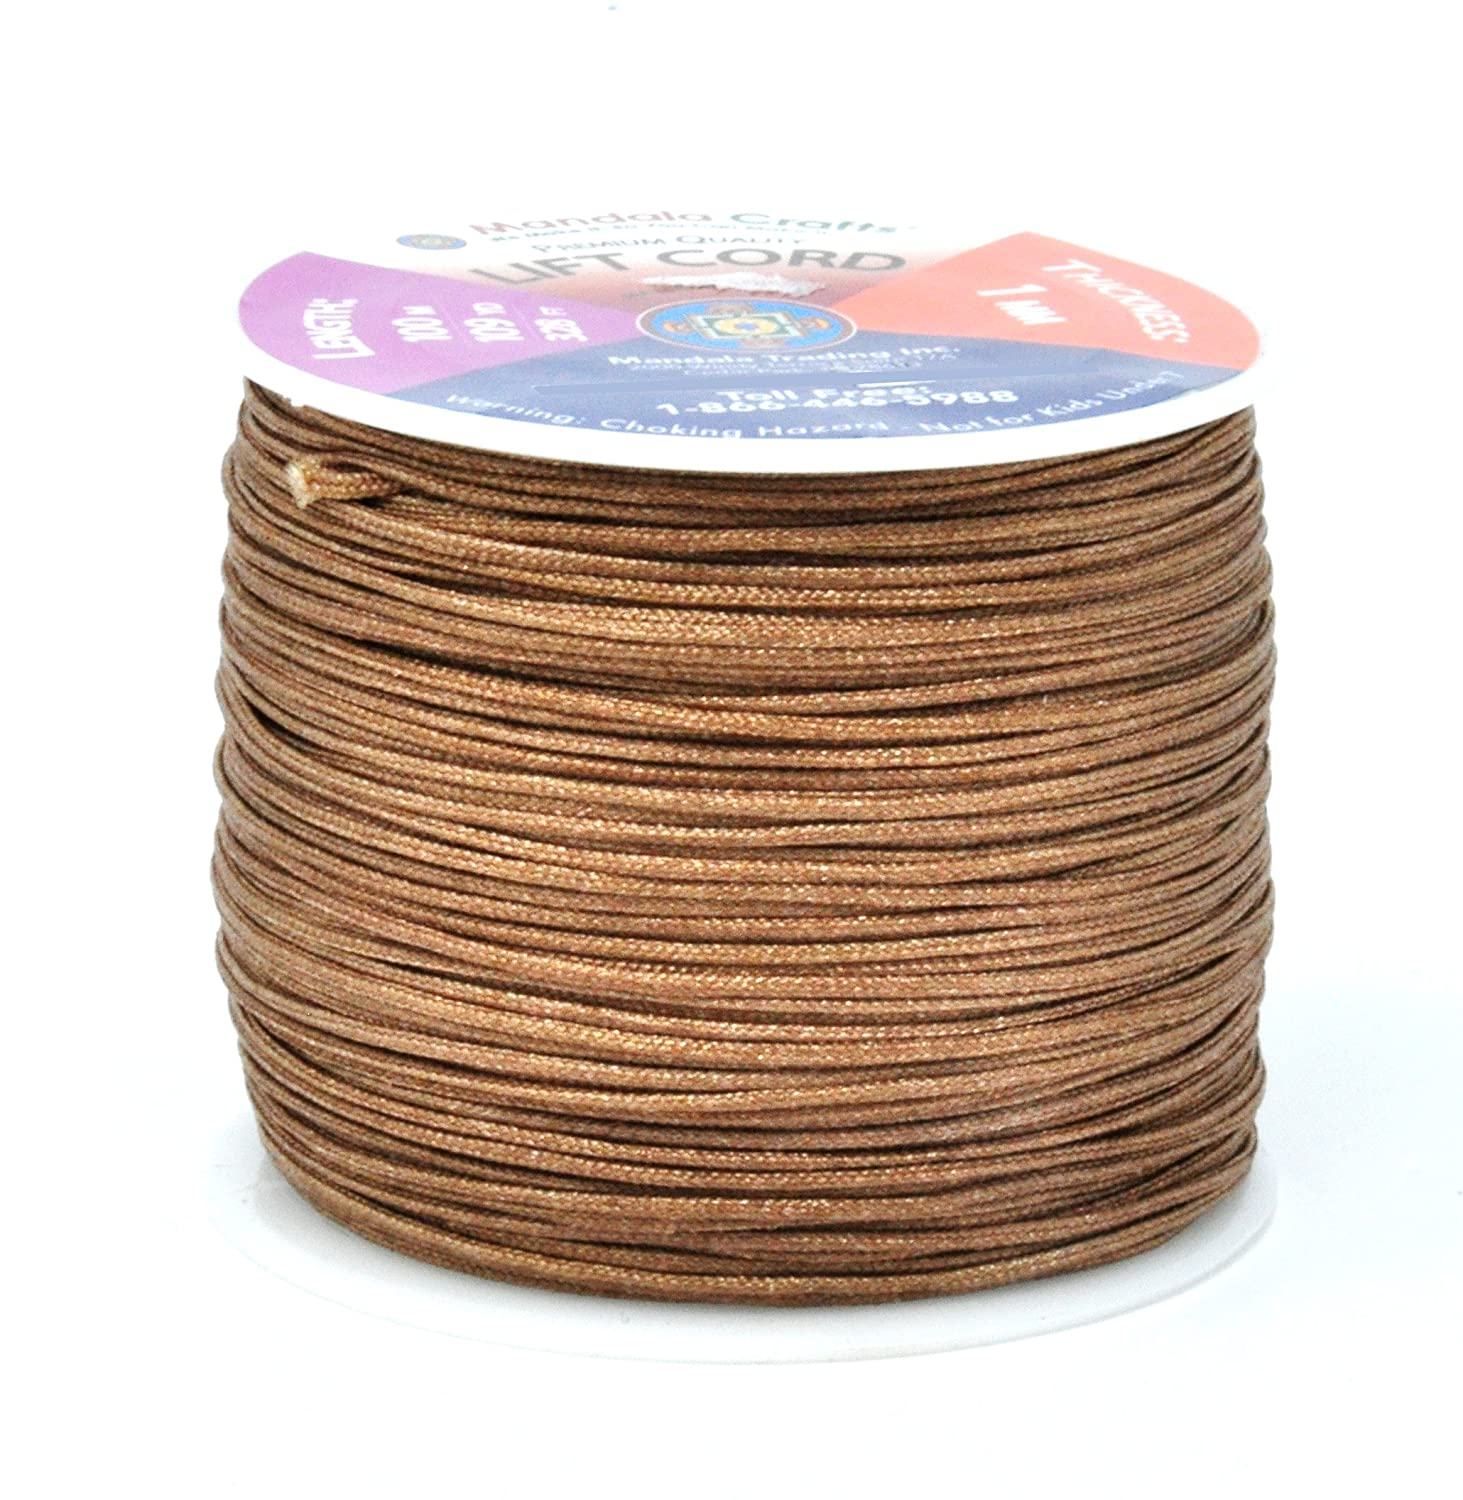 Lift Cord Replacement from Braided Nylon for RVs Shades Windows 0.8mm, Chocolate Brown Mandala Crafts Blinds String and Rollers